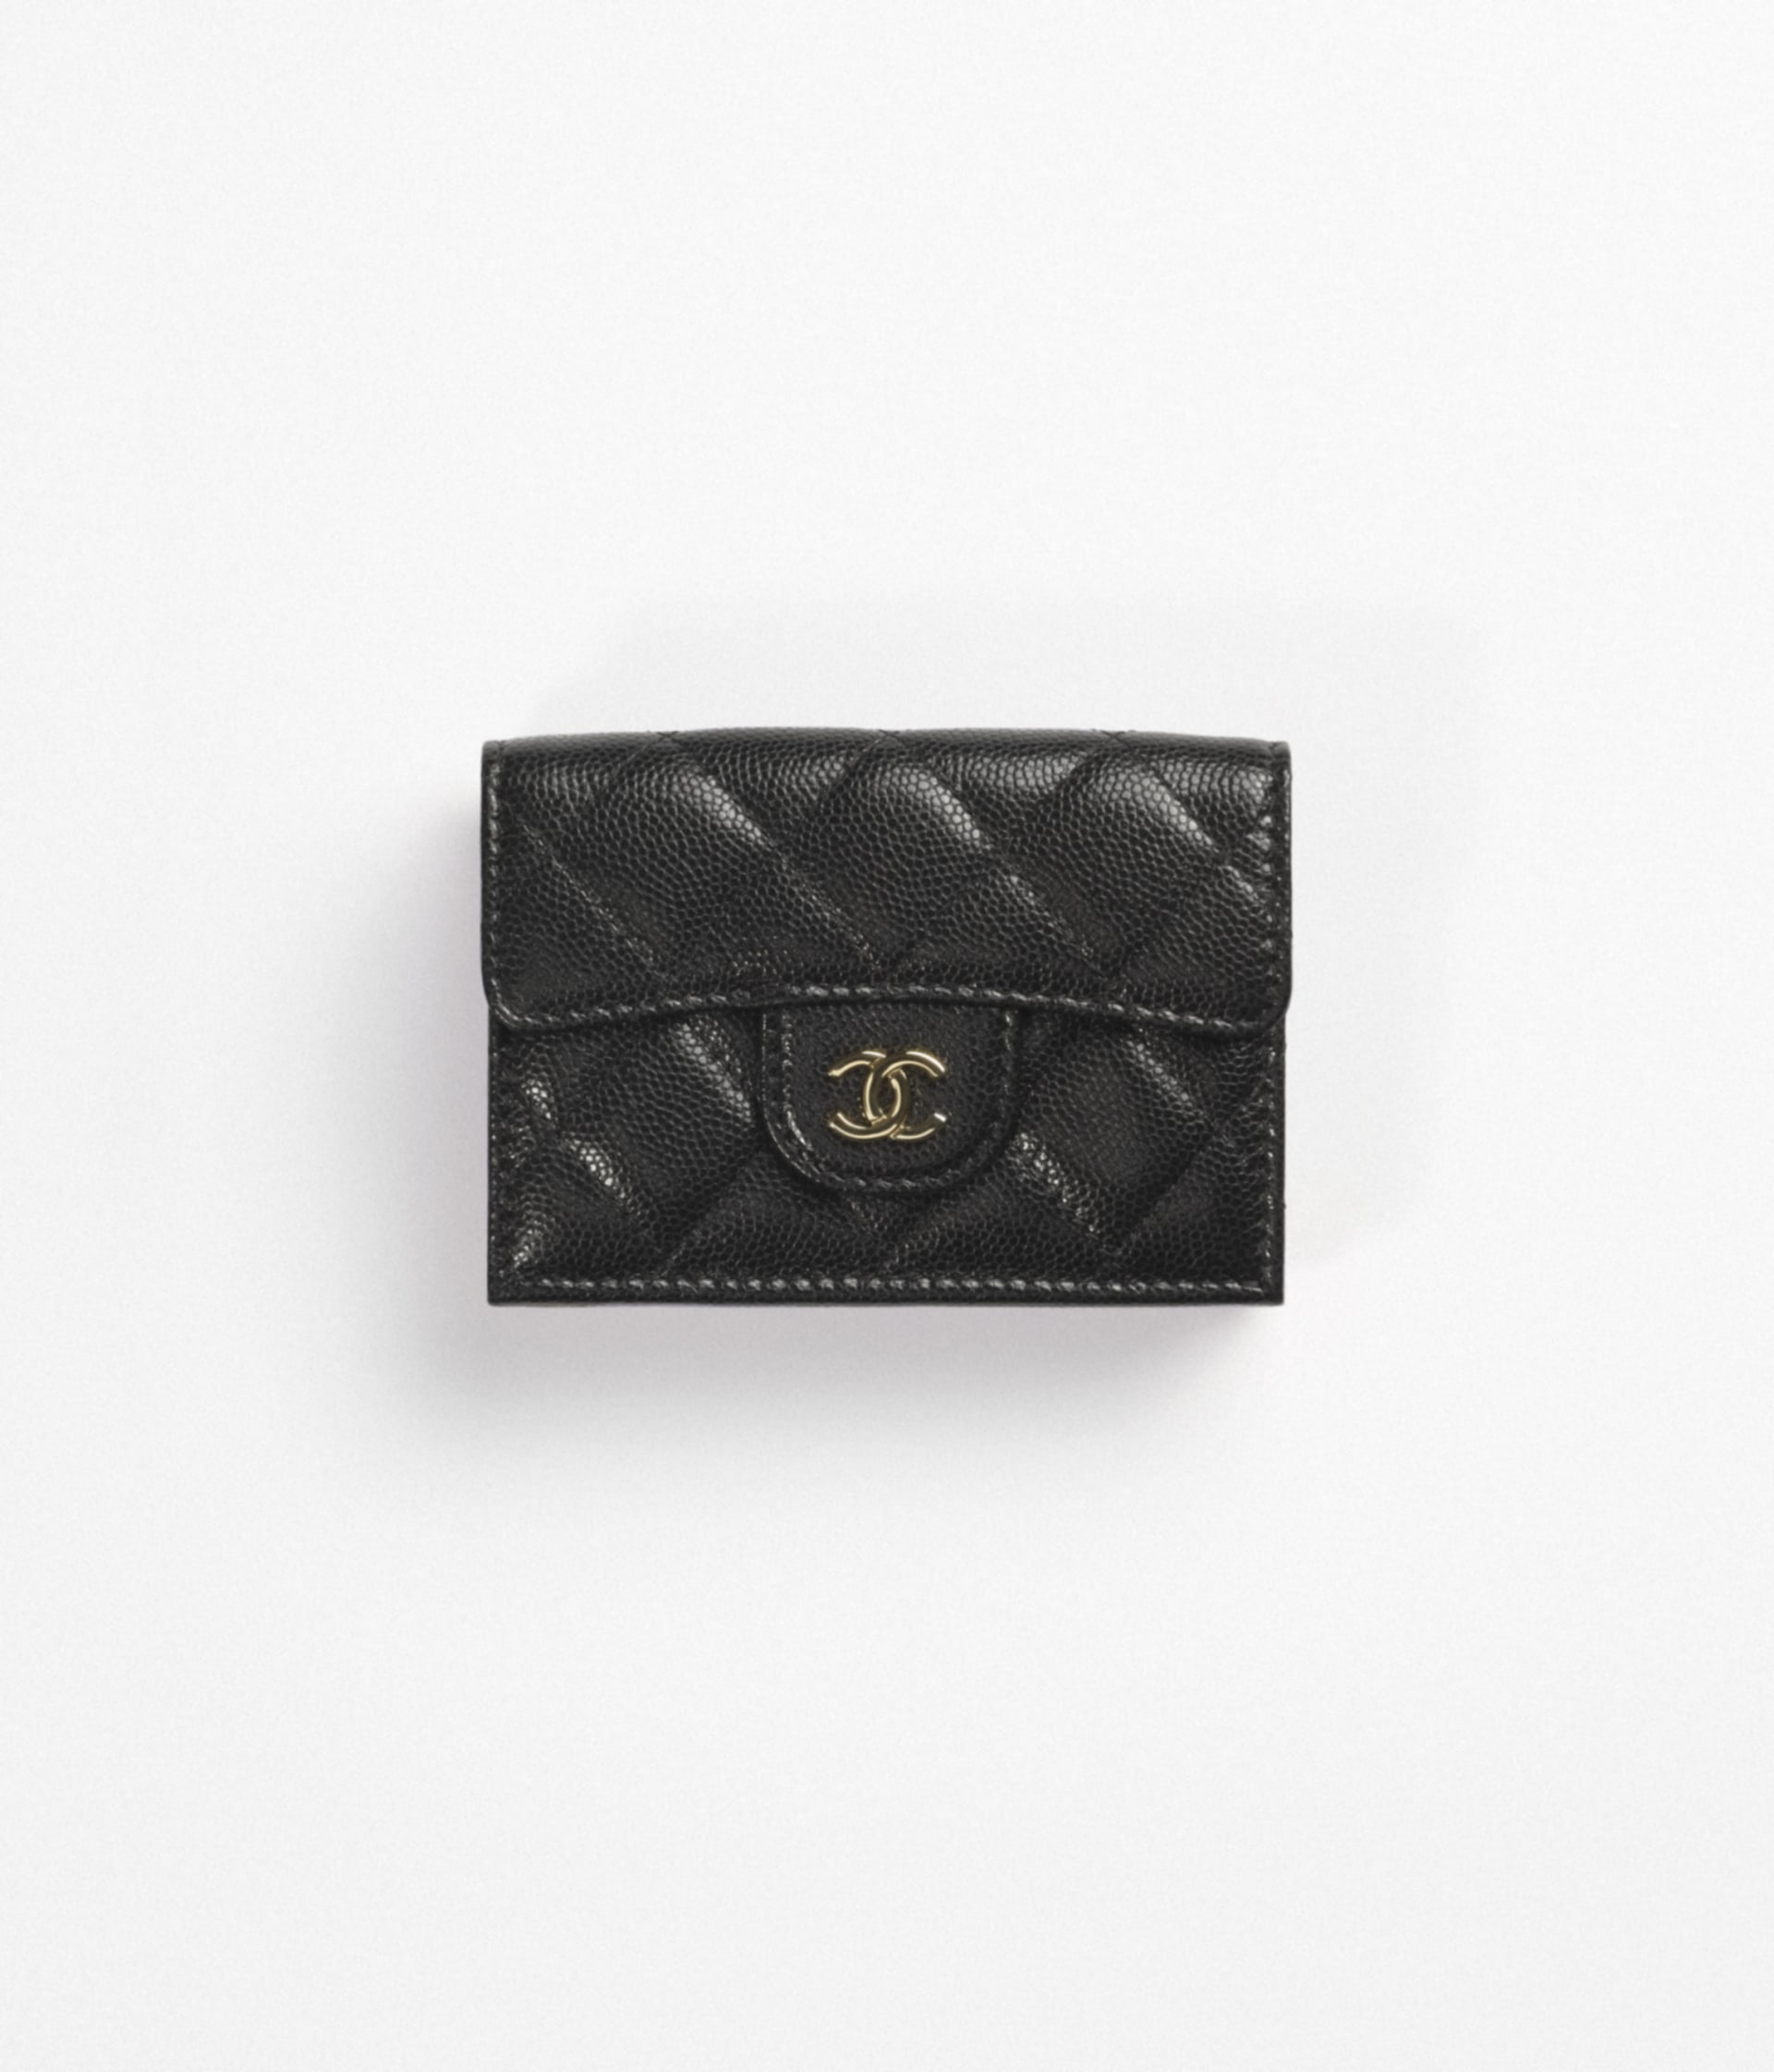 image 1 - Classic Small Flap Wallet - Grained Calfskin & Gold-Tone Metal - Black